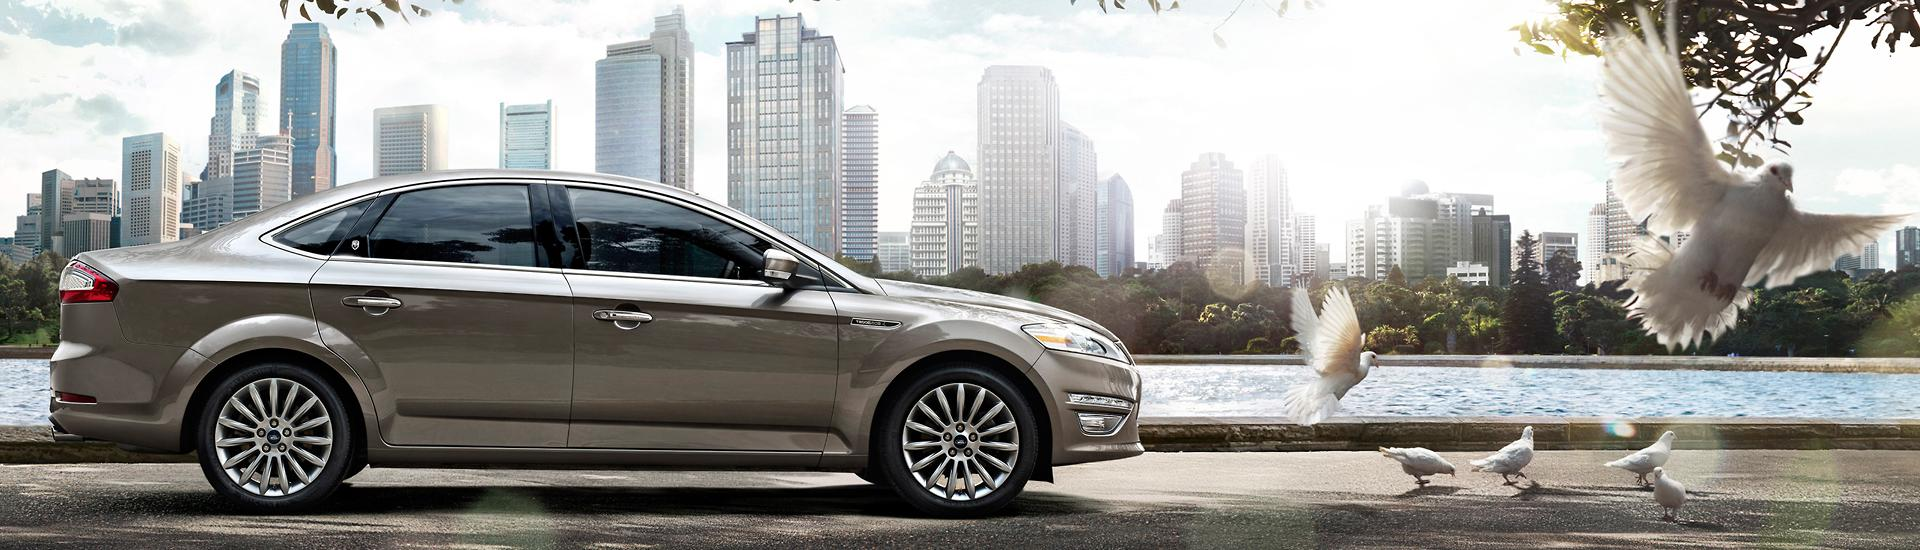 New Ford Cars for Sale in Australia - carsales.com.au